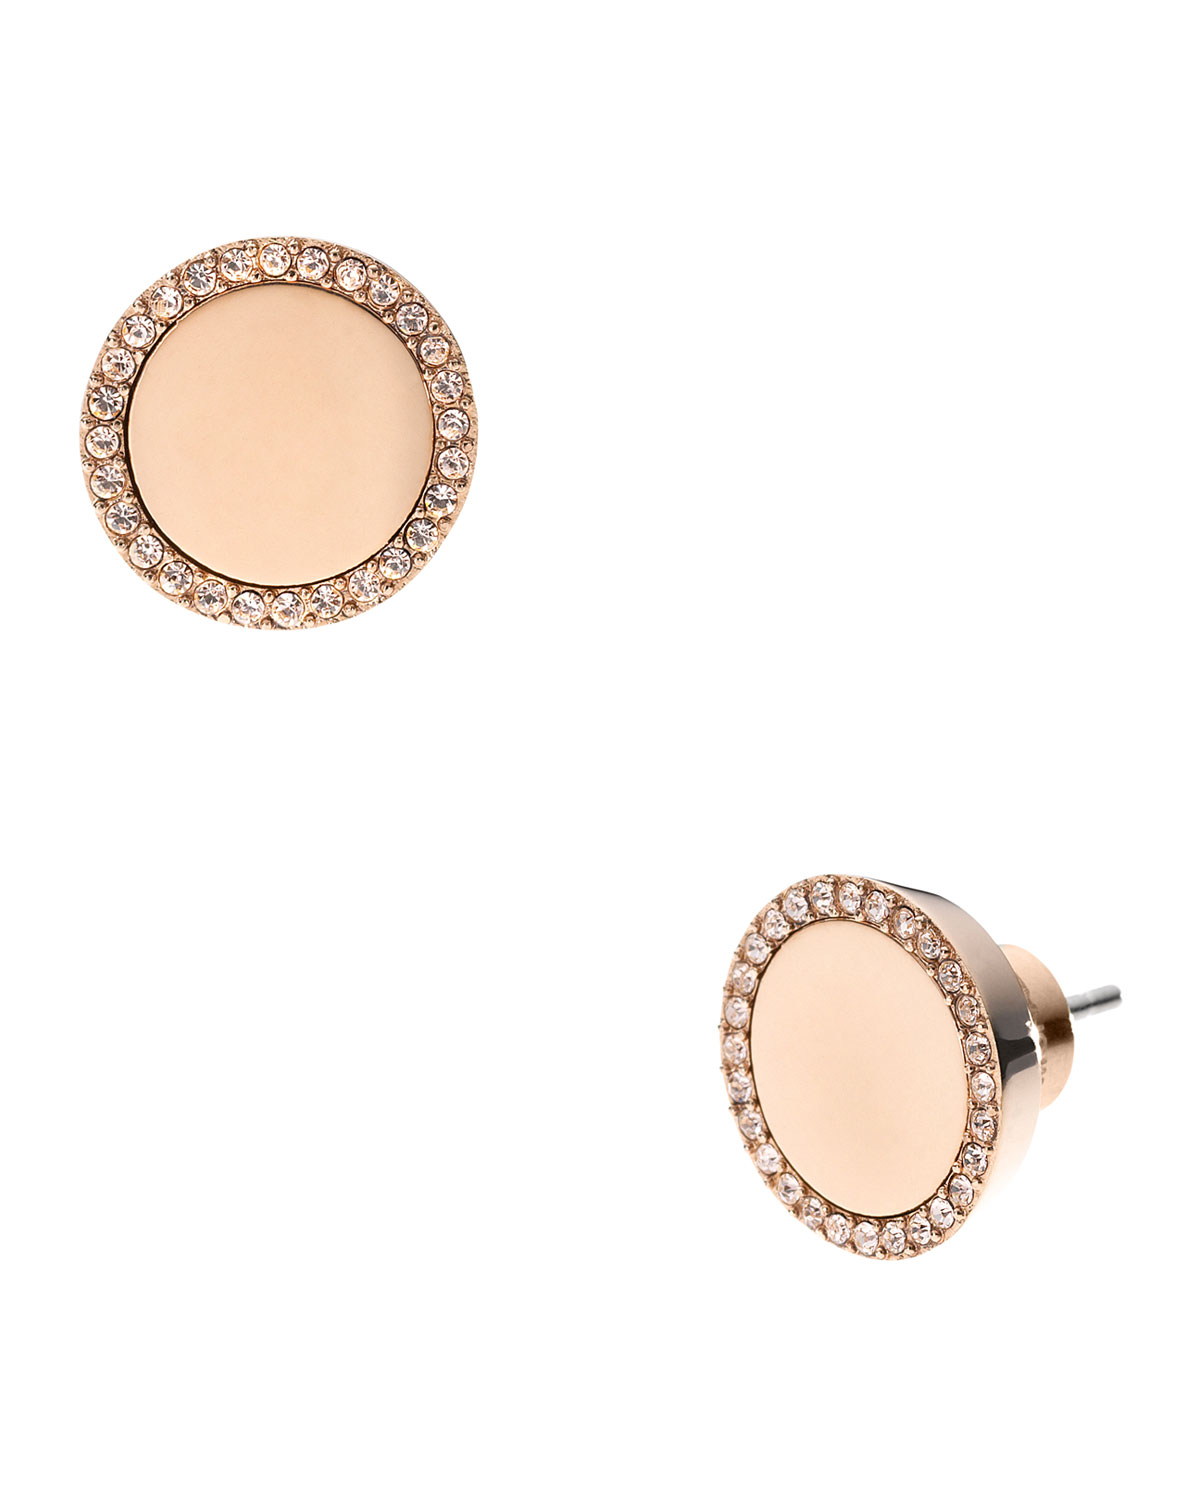 981ce1b785f9 Lyst - Michael Kors Pave Slice Stud Earrings Rose Golden in Pink